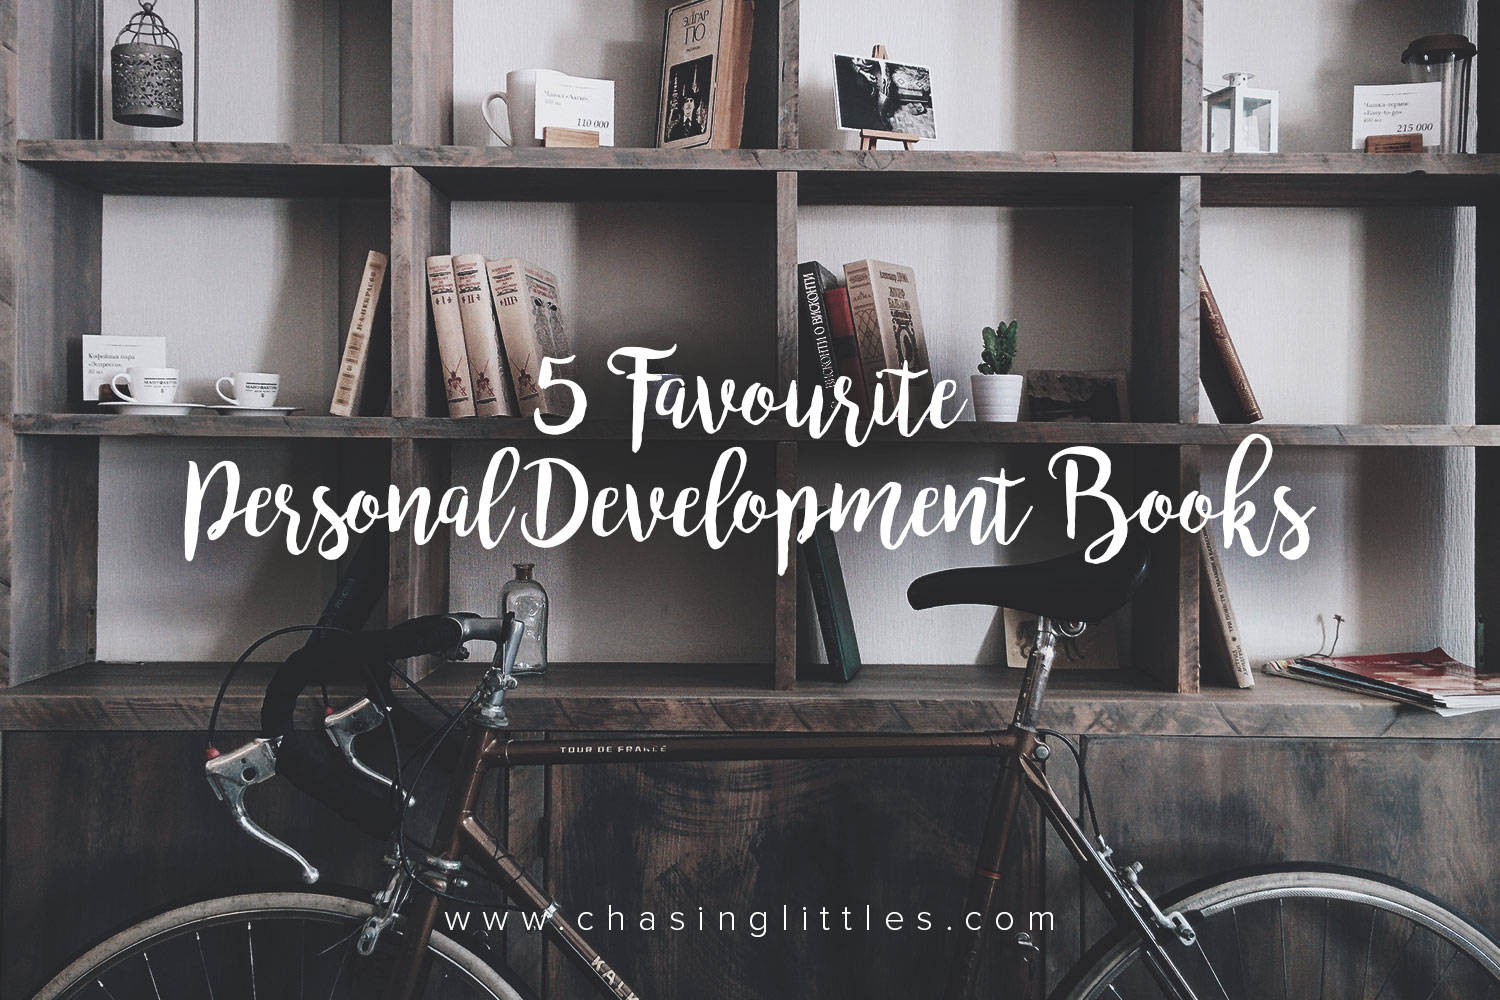 5 Favourite Personal Development Books